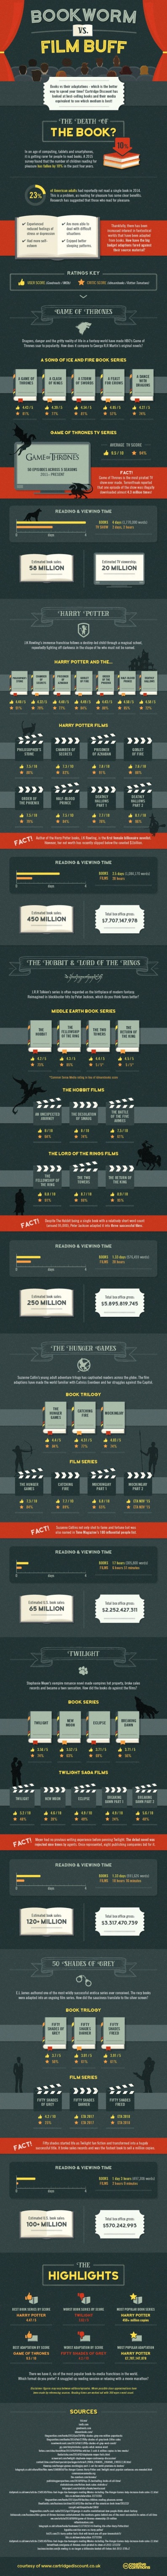 Books-vs.-their-movie-adaptations-infographic